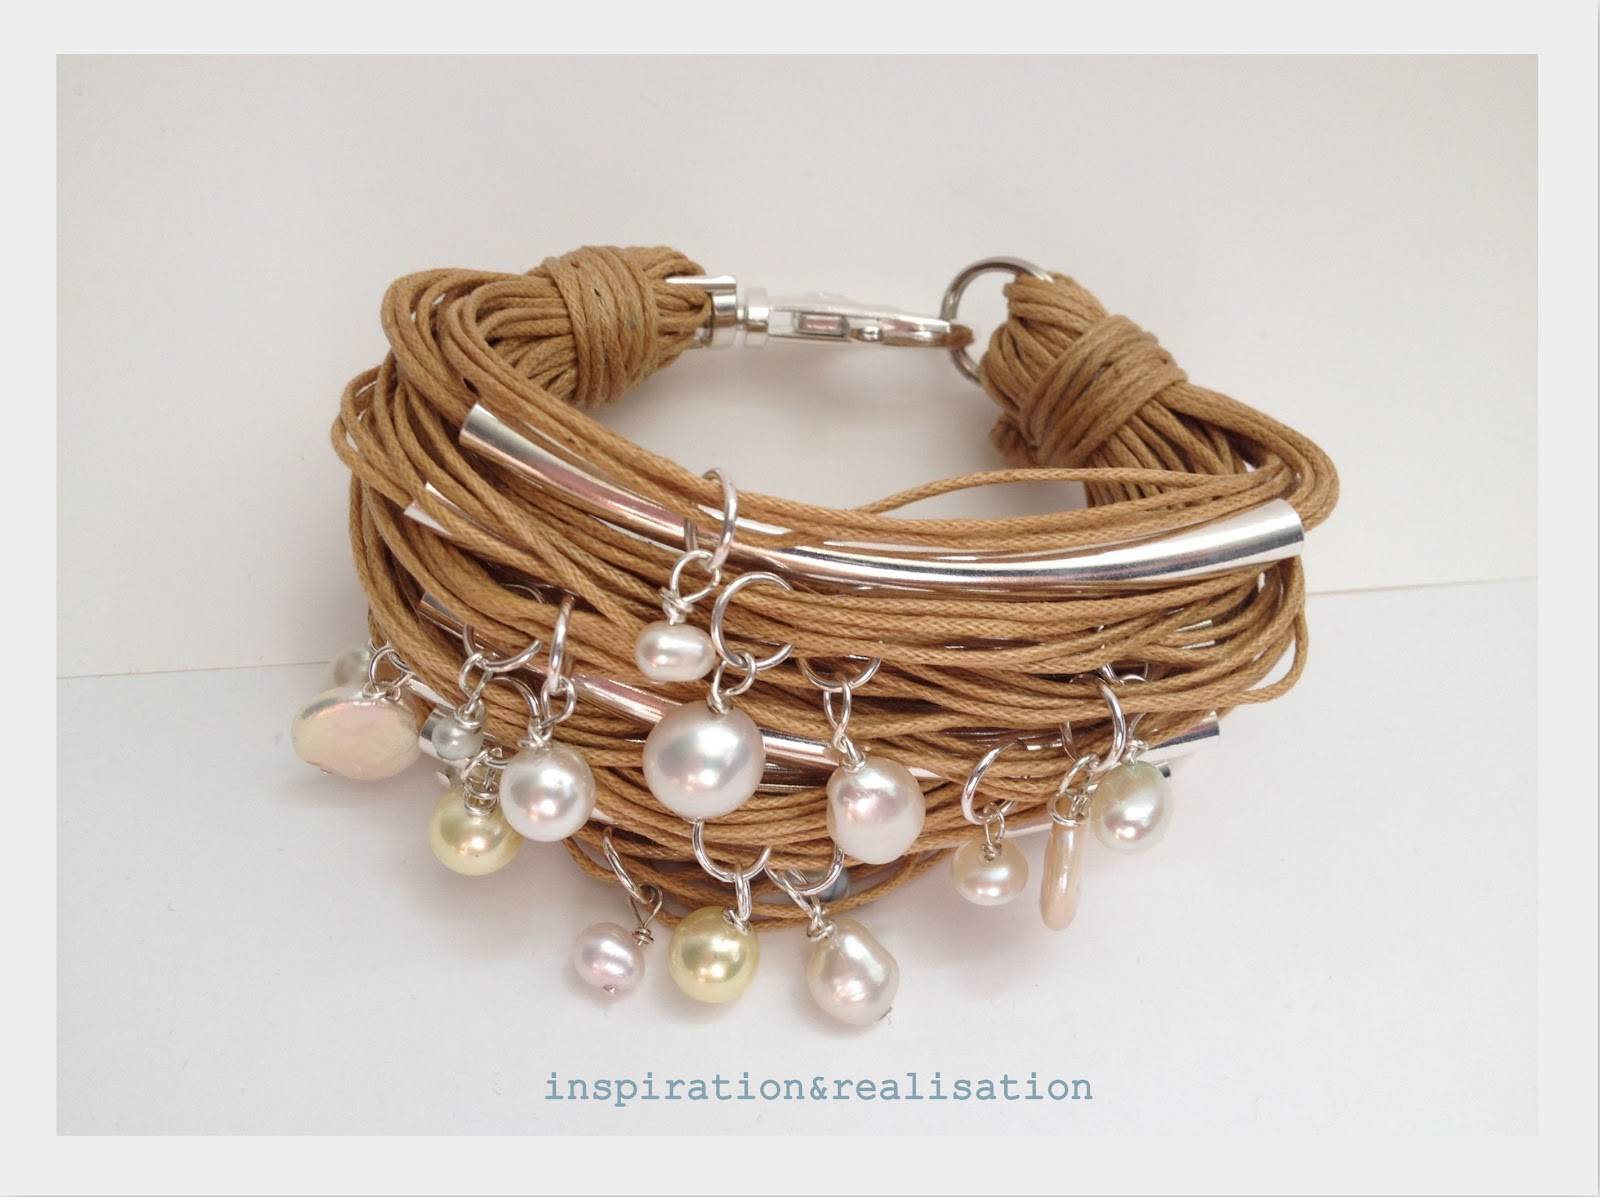 Forum on this topic: Awesome DIY Crystal Tube Bracelet, awesome-diy-crystal-tube-bracelet/